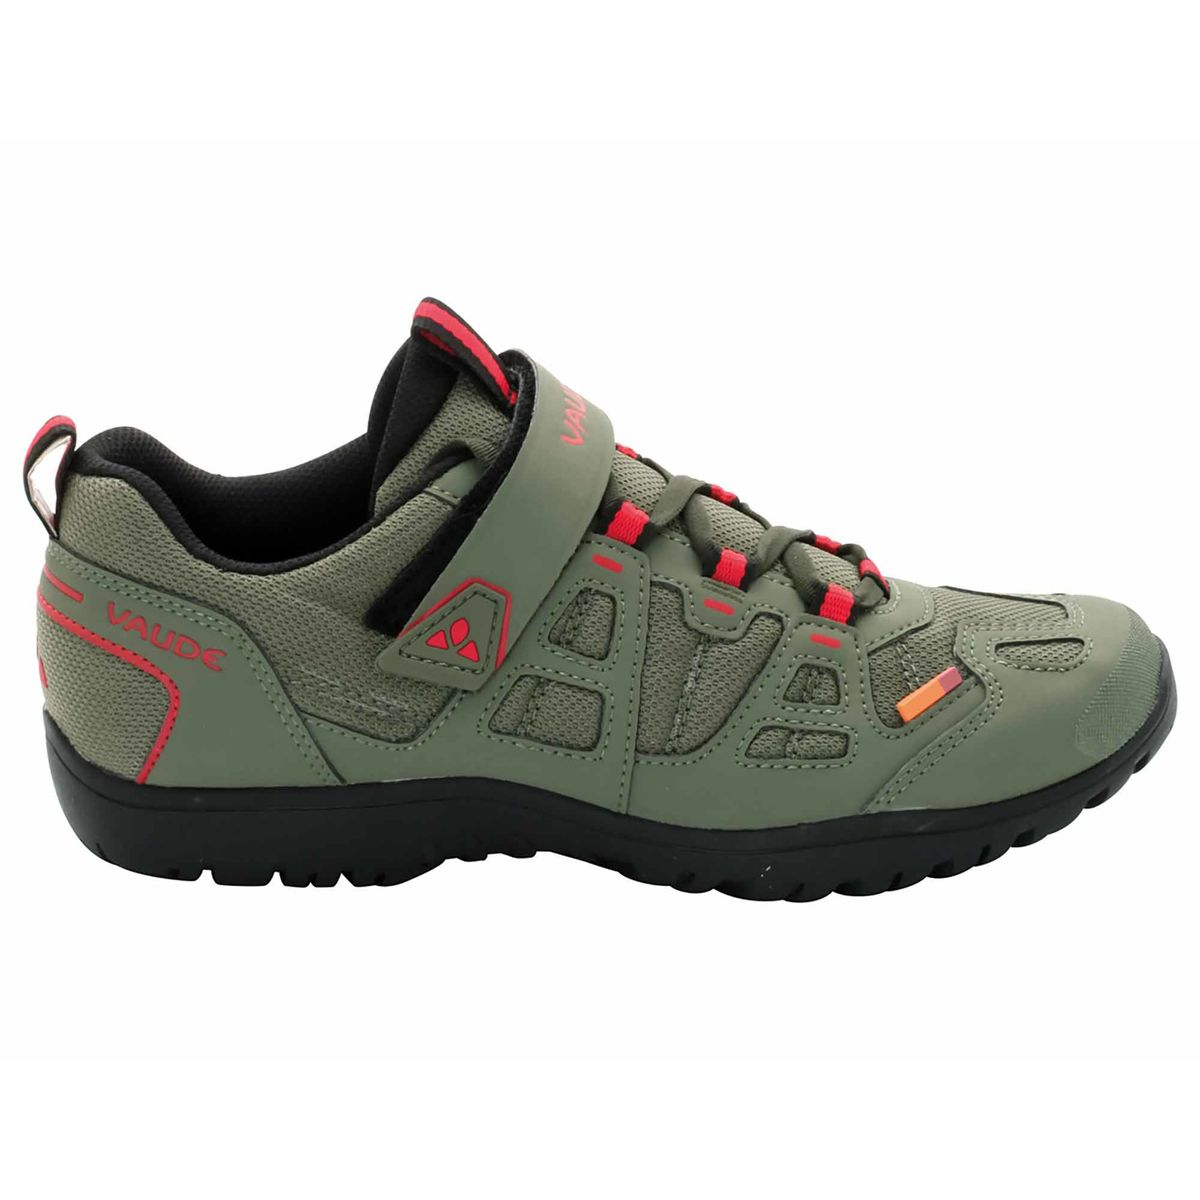 KELBY TR trekking shoes